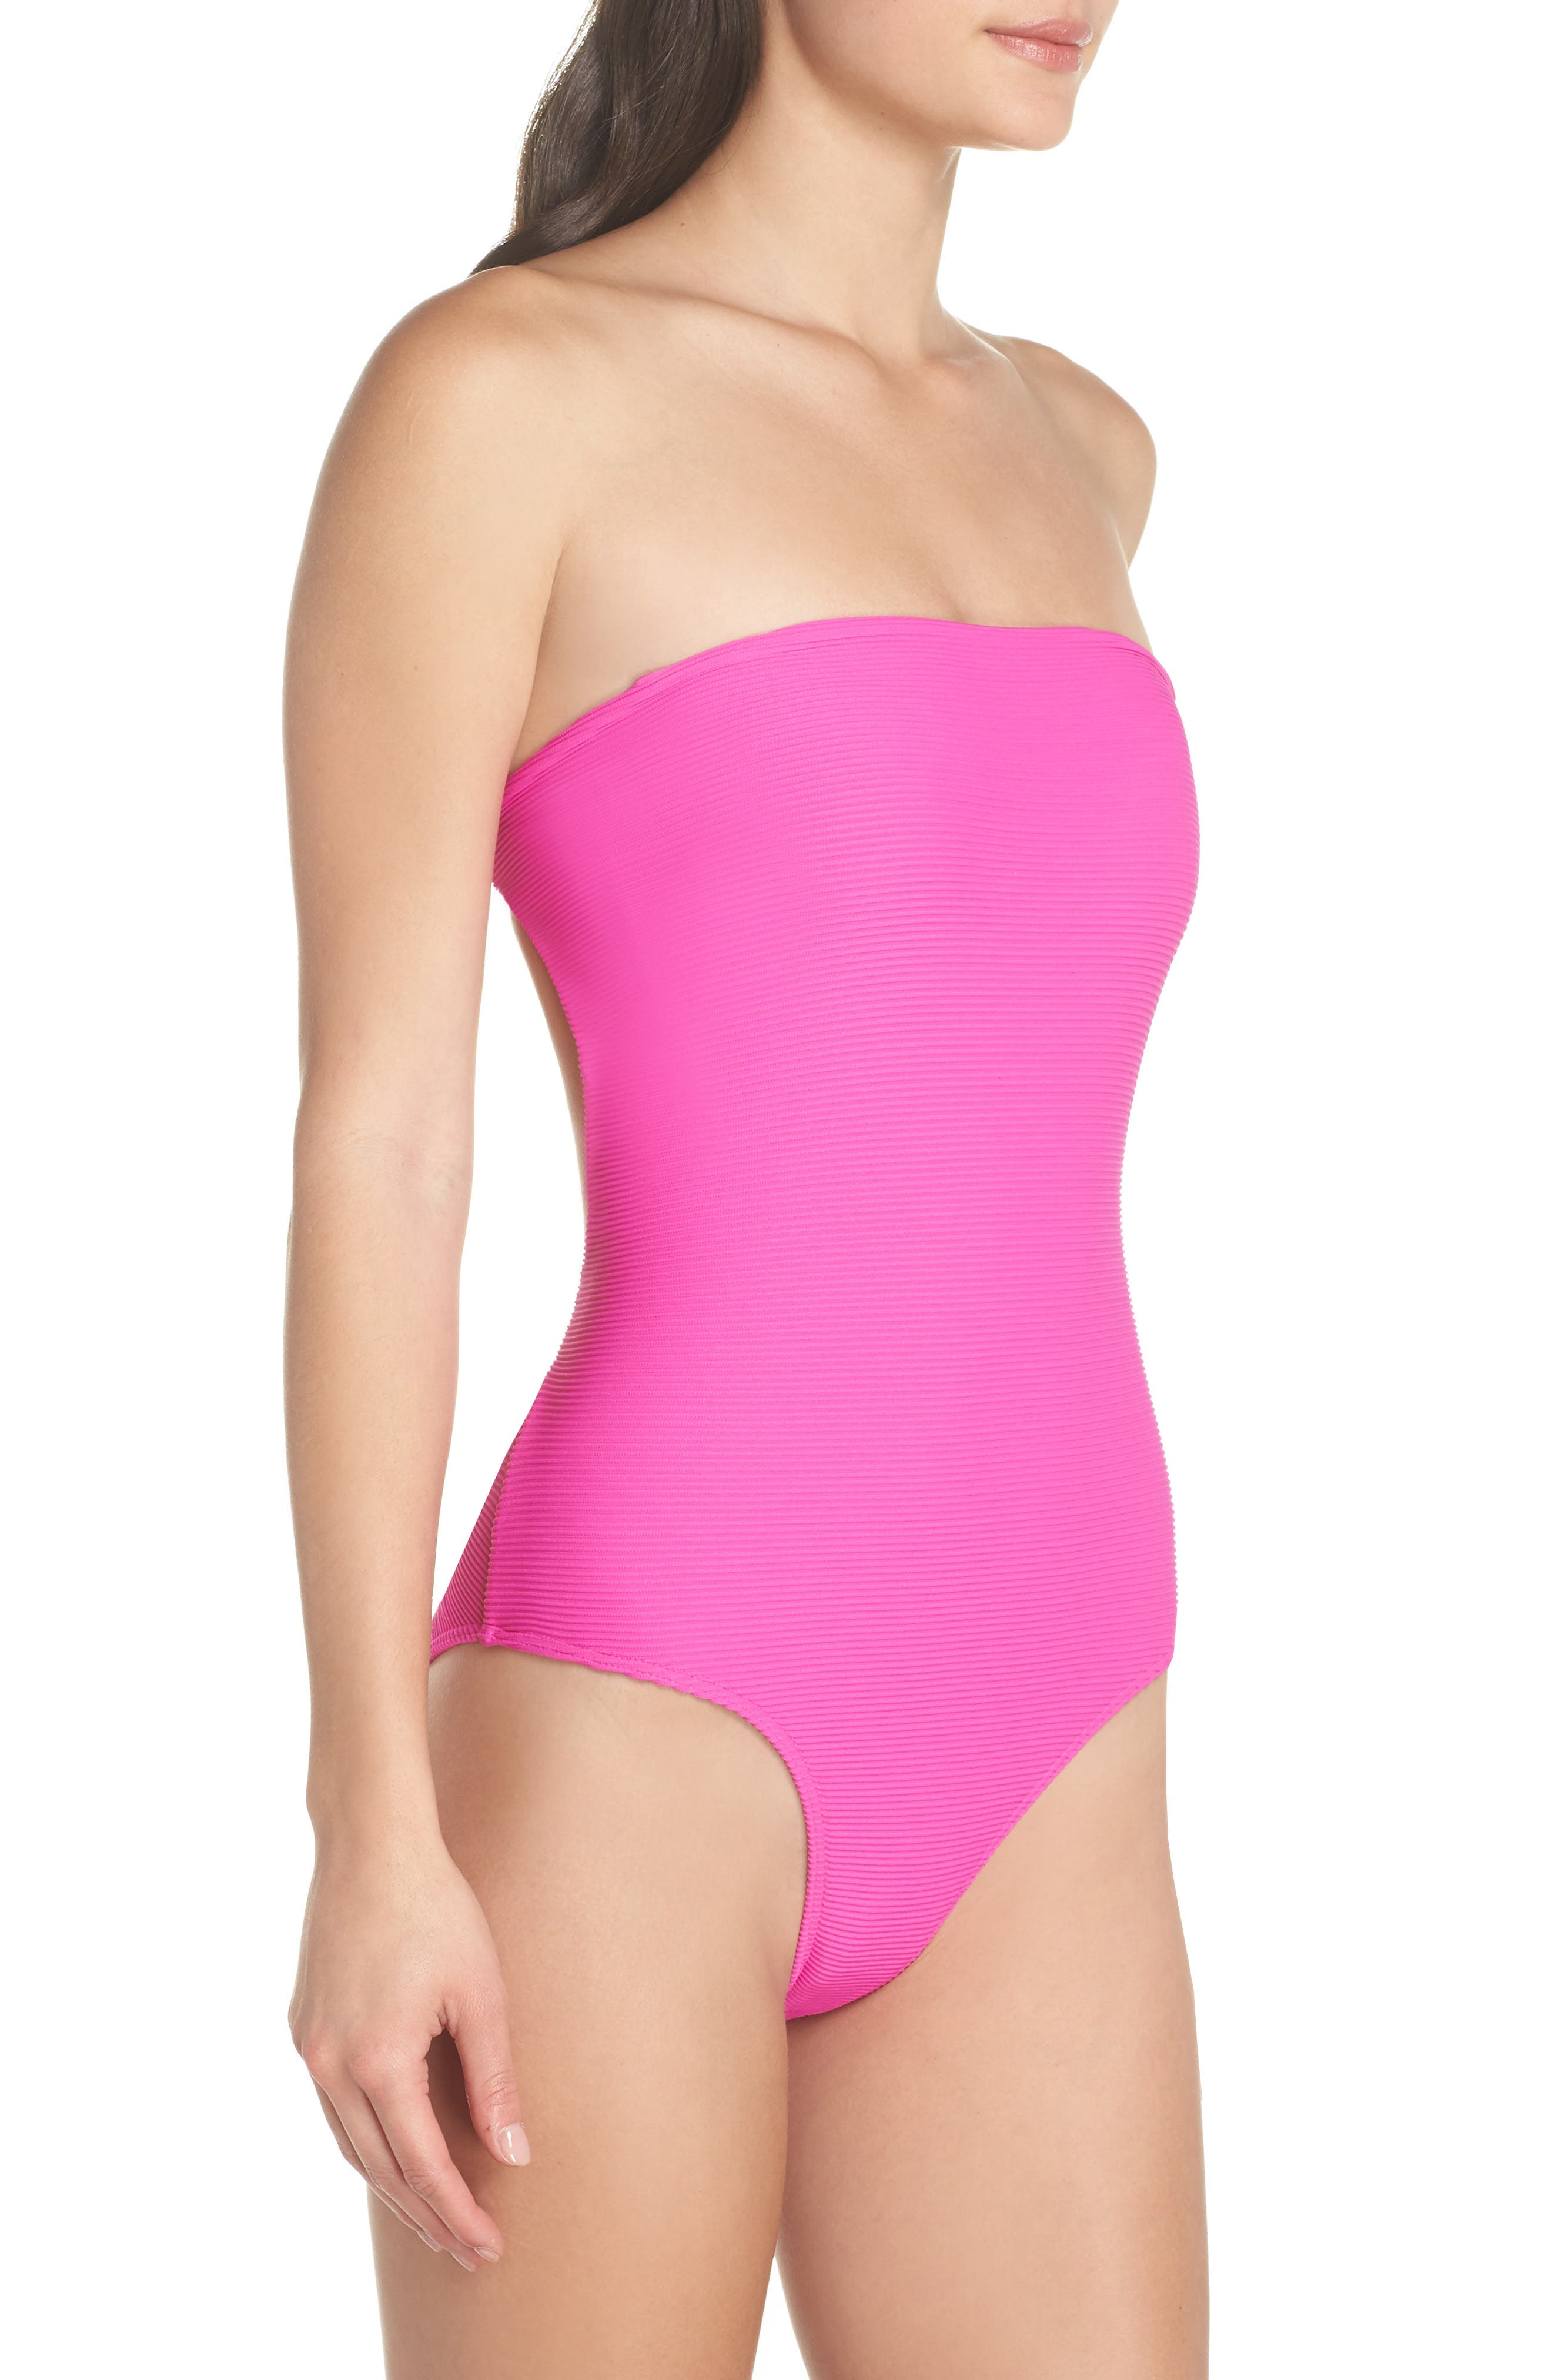 Tanlines Strapless One-Piece Swimsuit,                             Alternate thumbnail 4, color,                             Rebel Pink